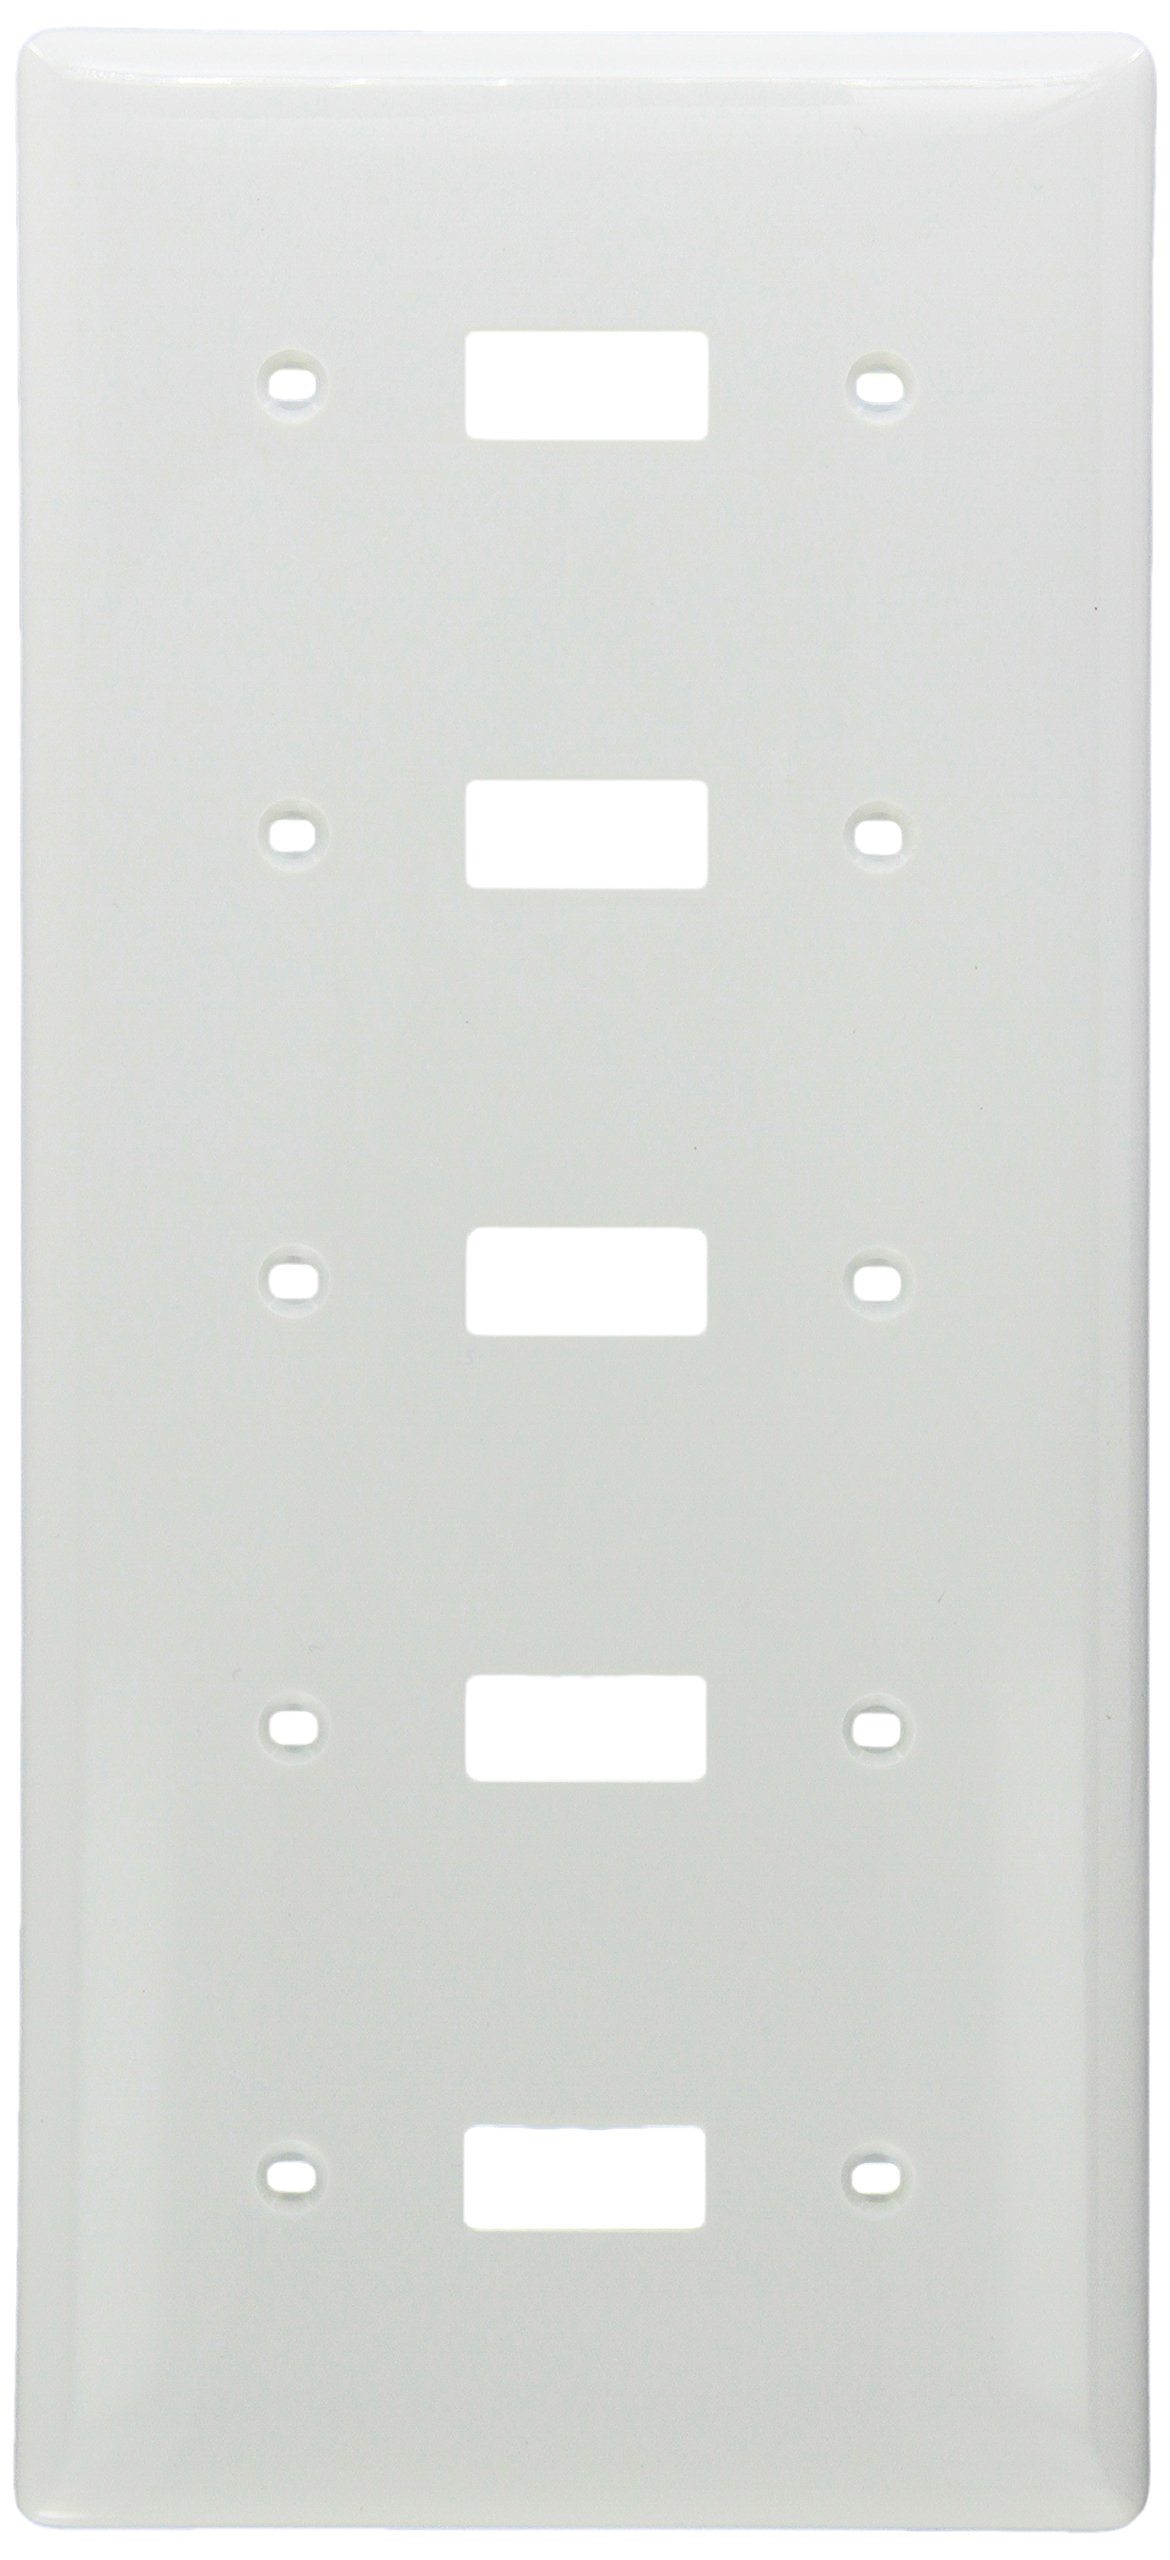 Wallplate, Nylon, Standard Size, 5-Gang, 5) Toggle, White